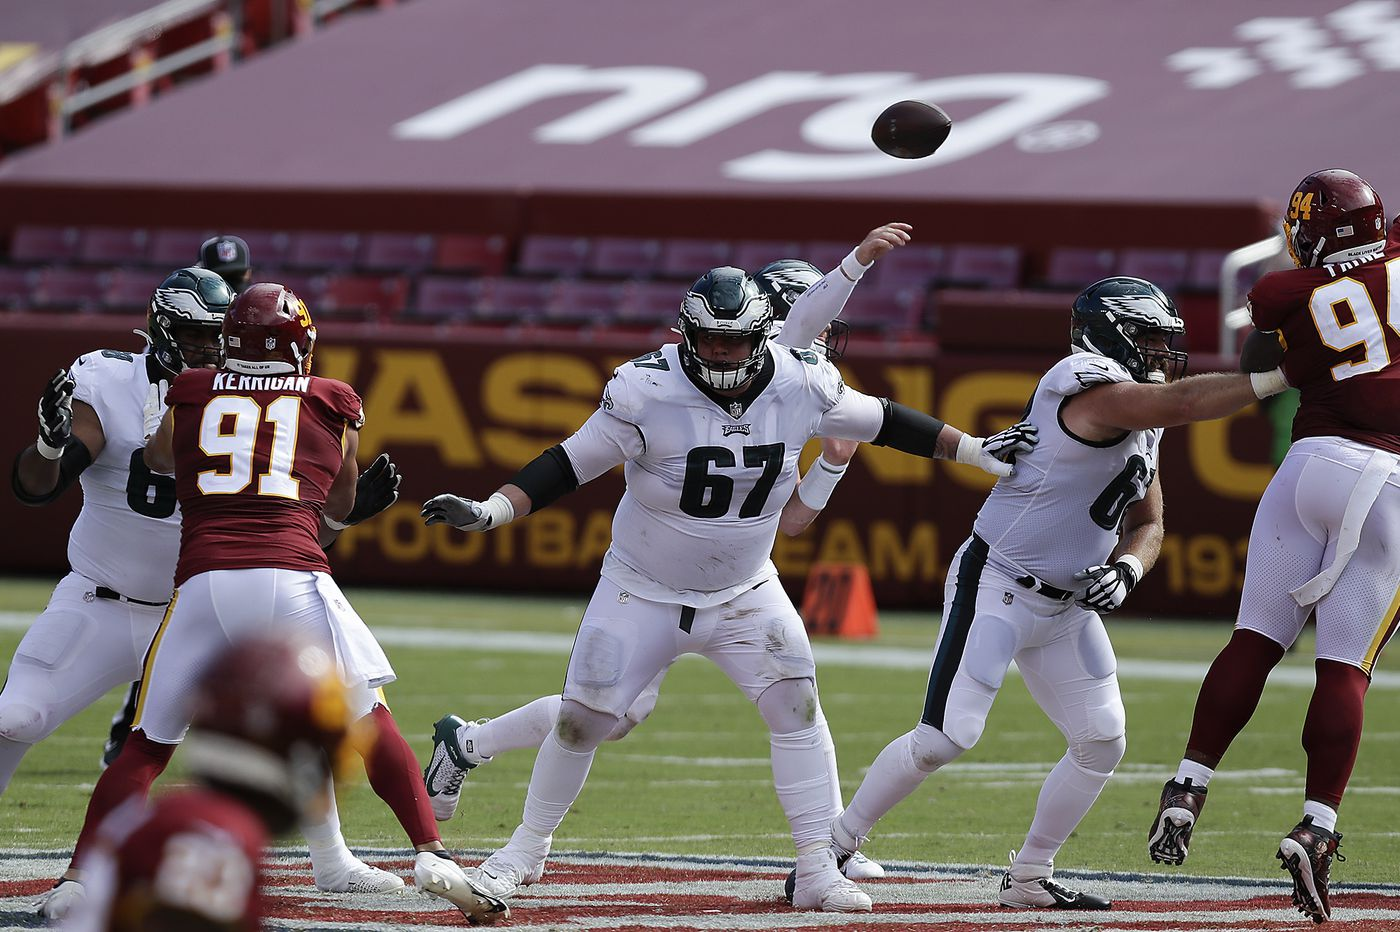 Eagles offensive line is set with Nate Herbig at left guard, Matt Pryor on the right